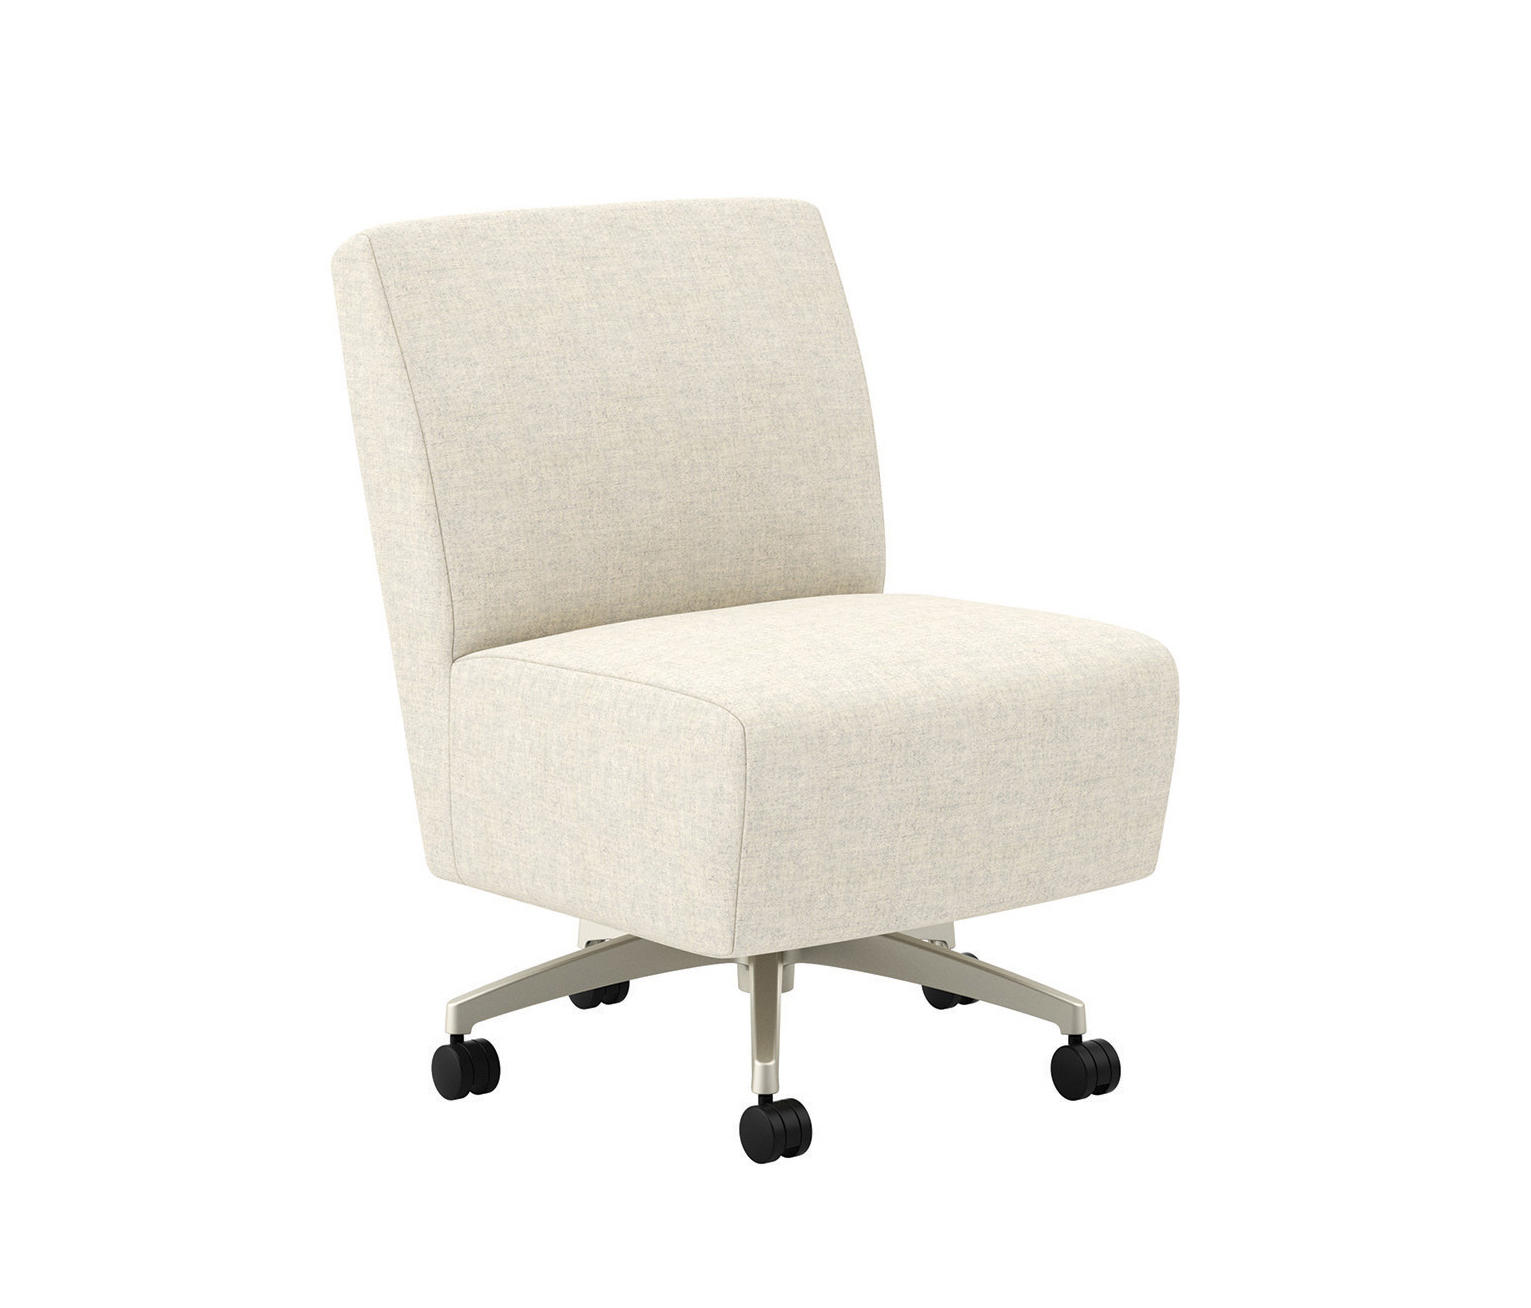 office club chairs chair seat cushion fringe armless lounge from national